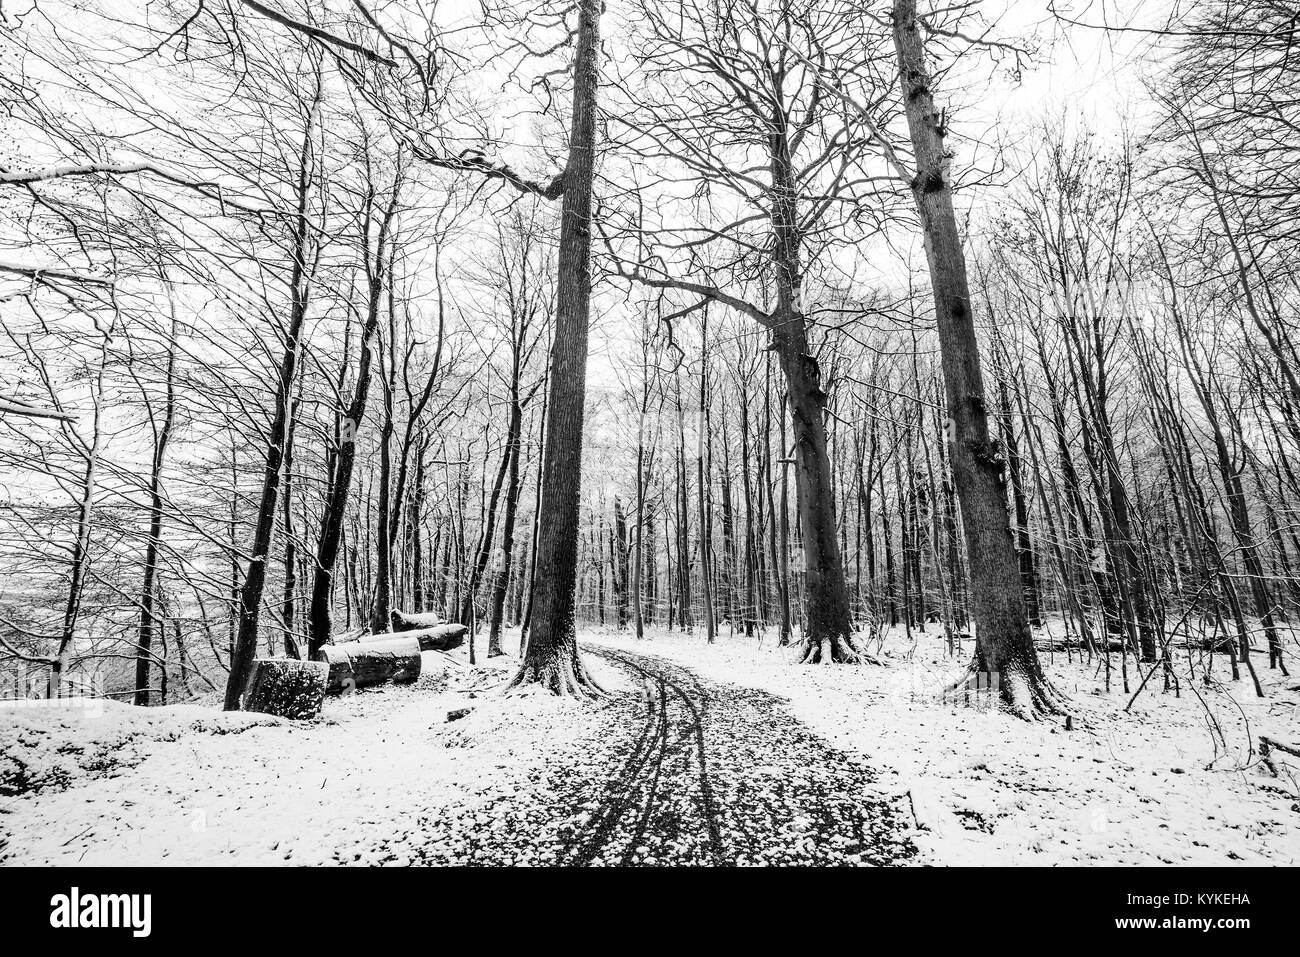 Winter scenery of a forest covered in snow in black and white colors - Stock Image